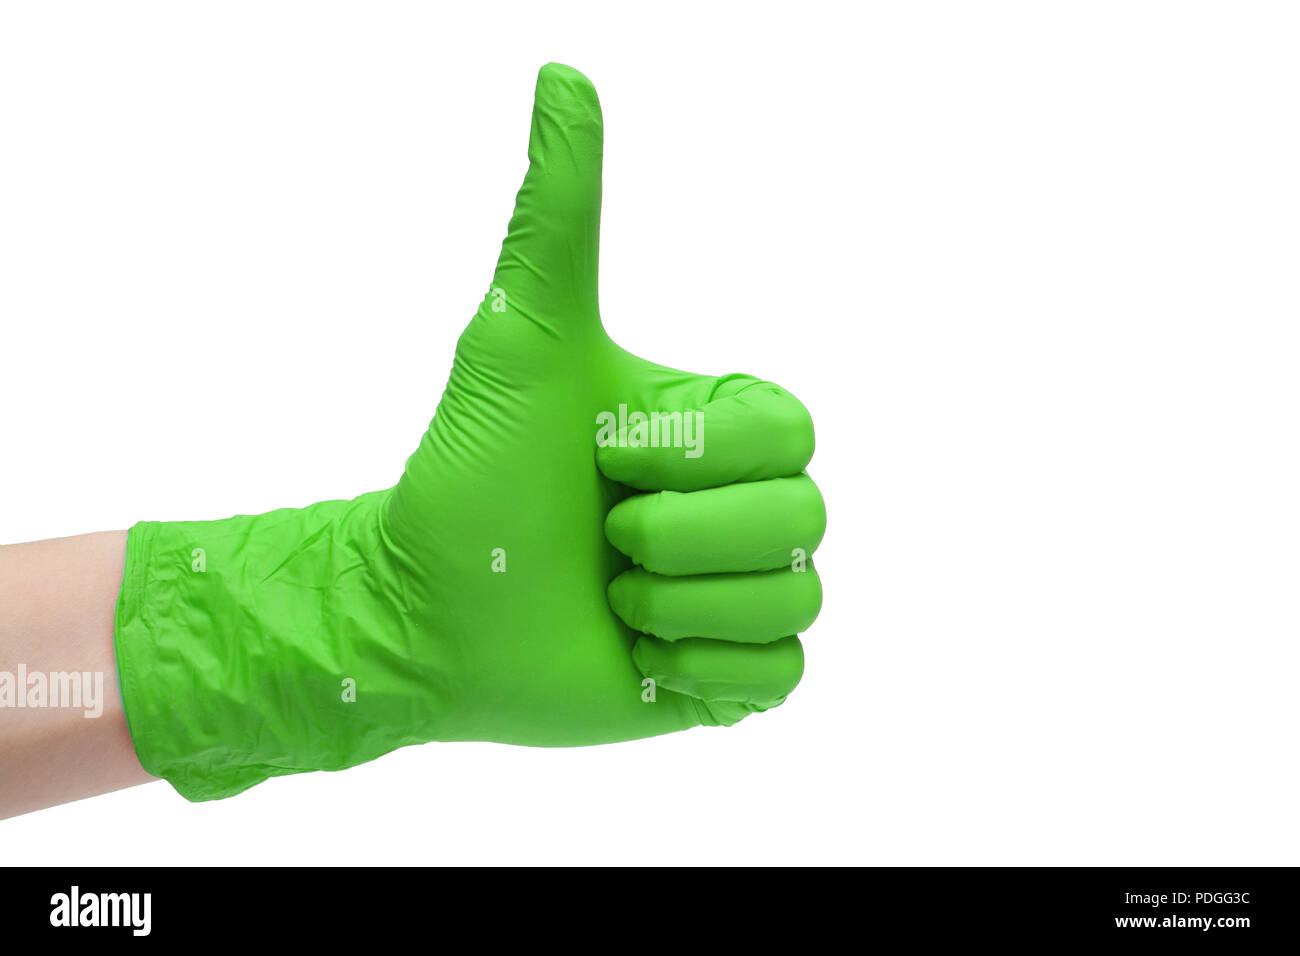 Like sign icon made of green medical gloves. Hand finger up symbol. Thumbs up gesture. Isolated on white background - Stock Image